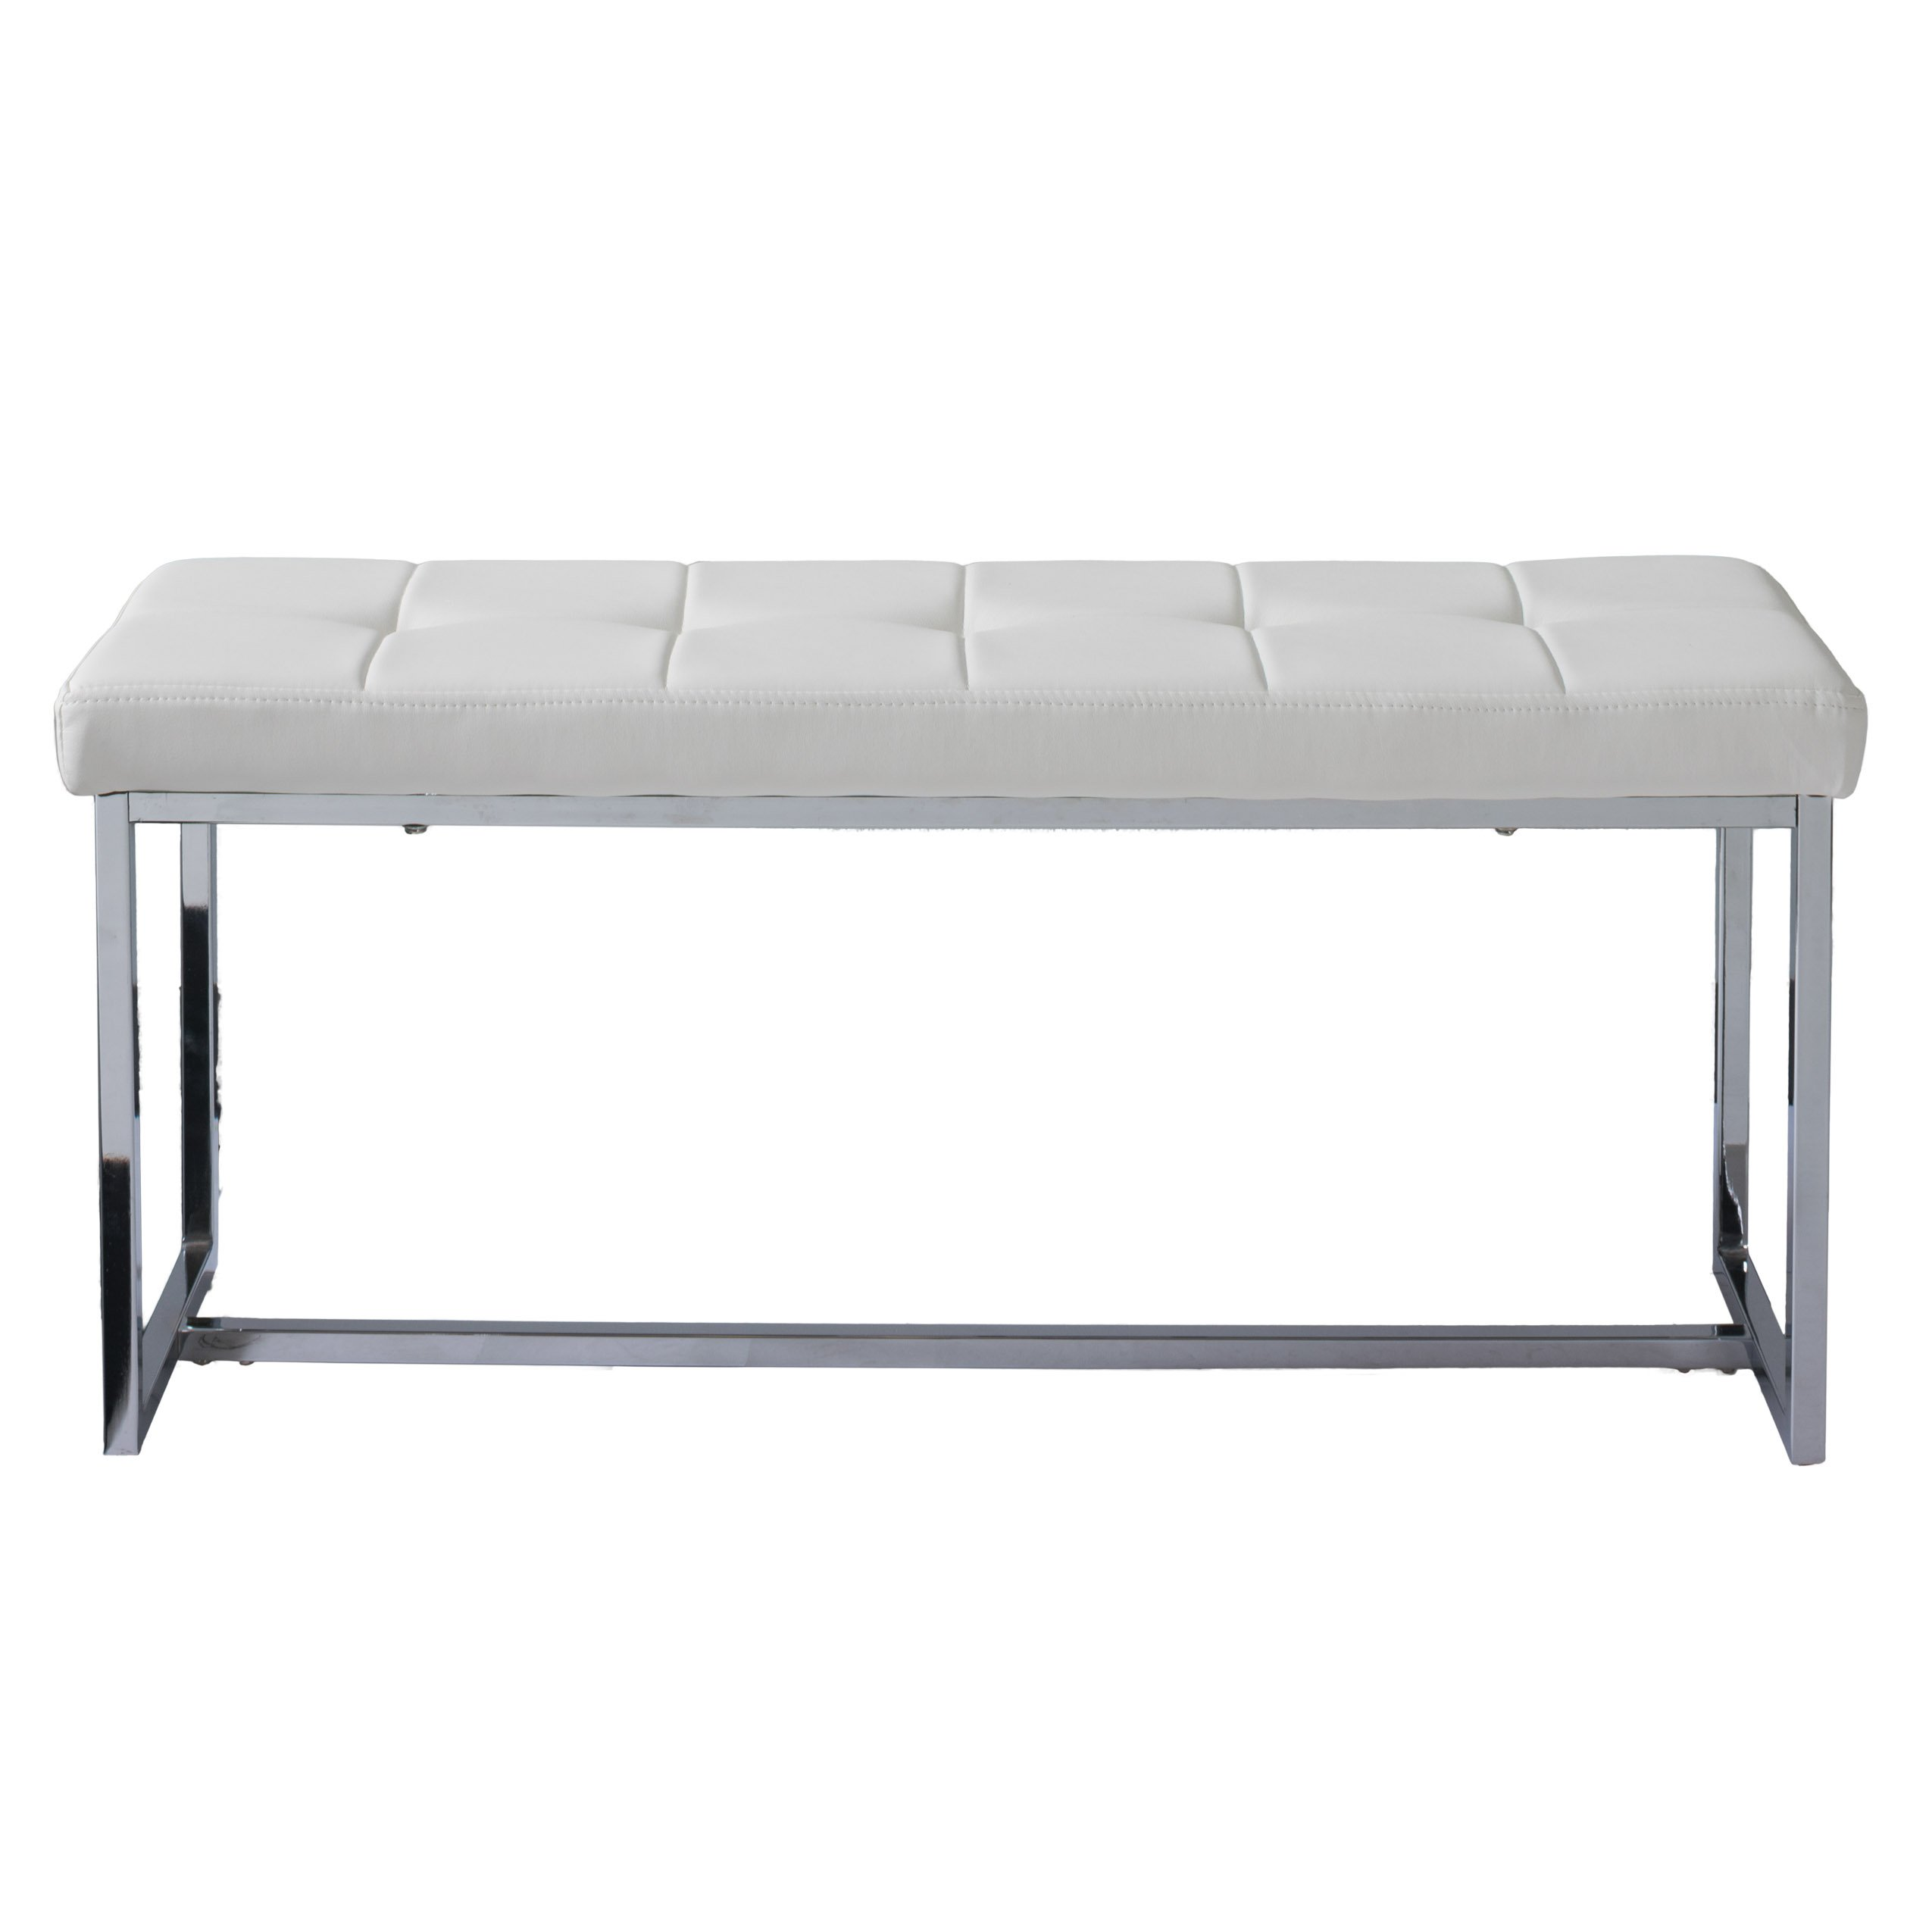 CorLiving LDF-112-O Huntington Bench White by CorLiving (Image #2)